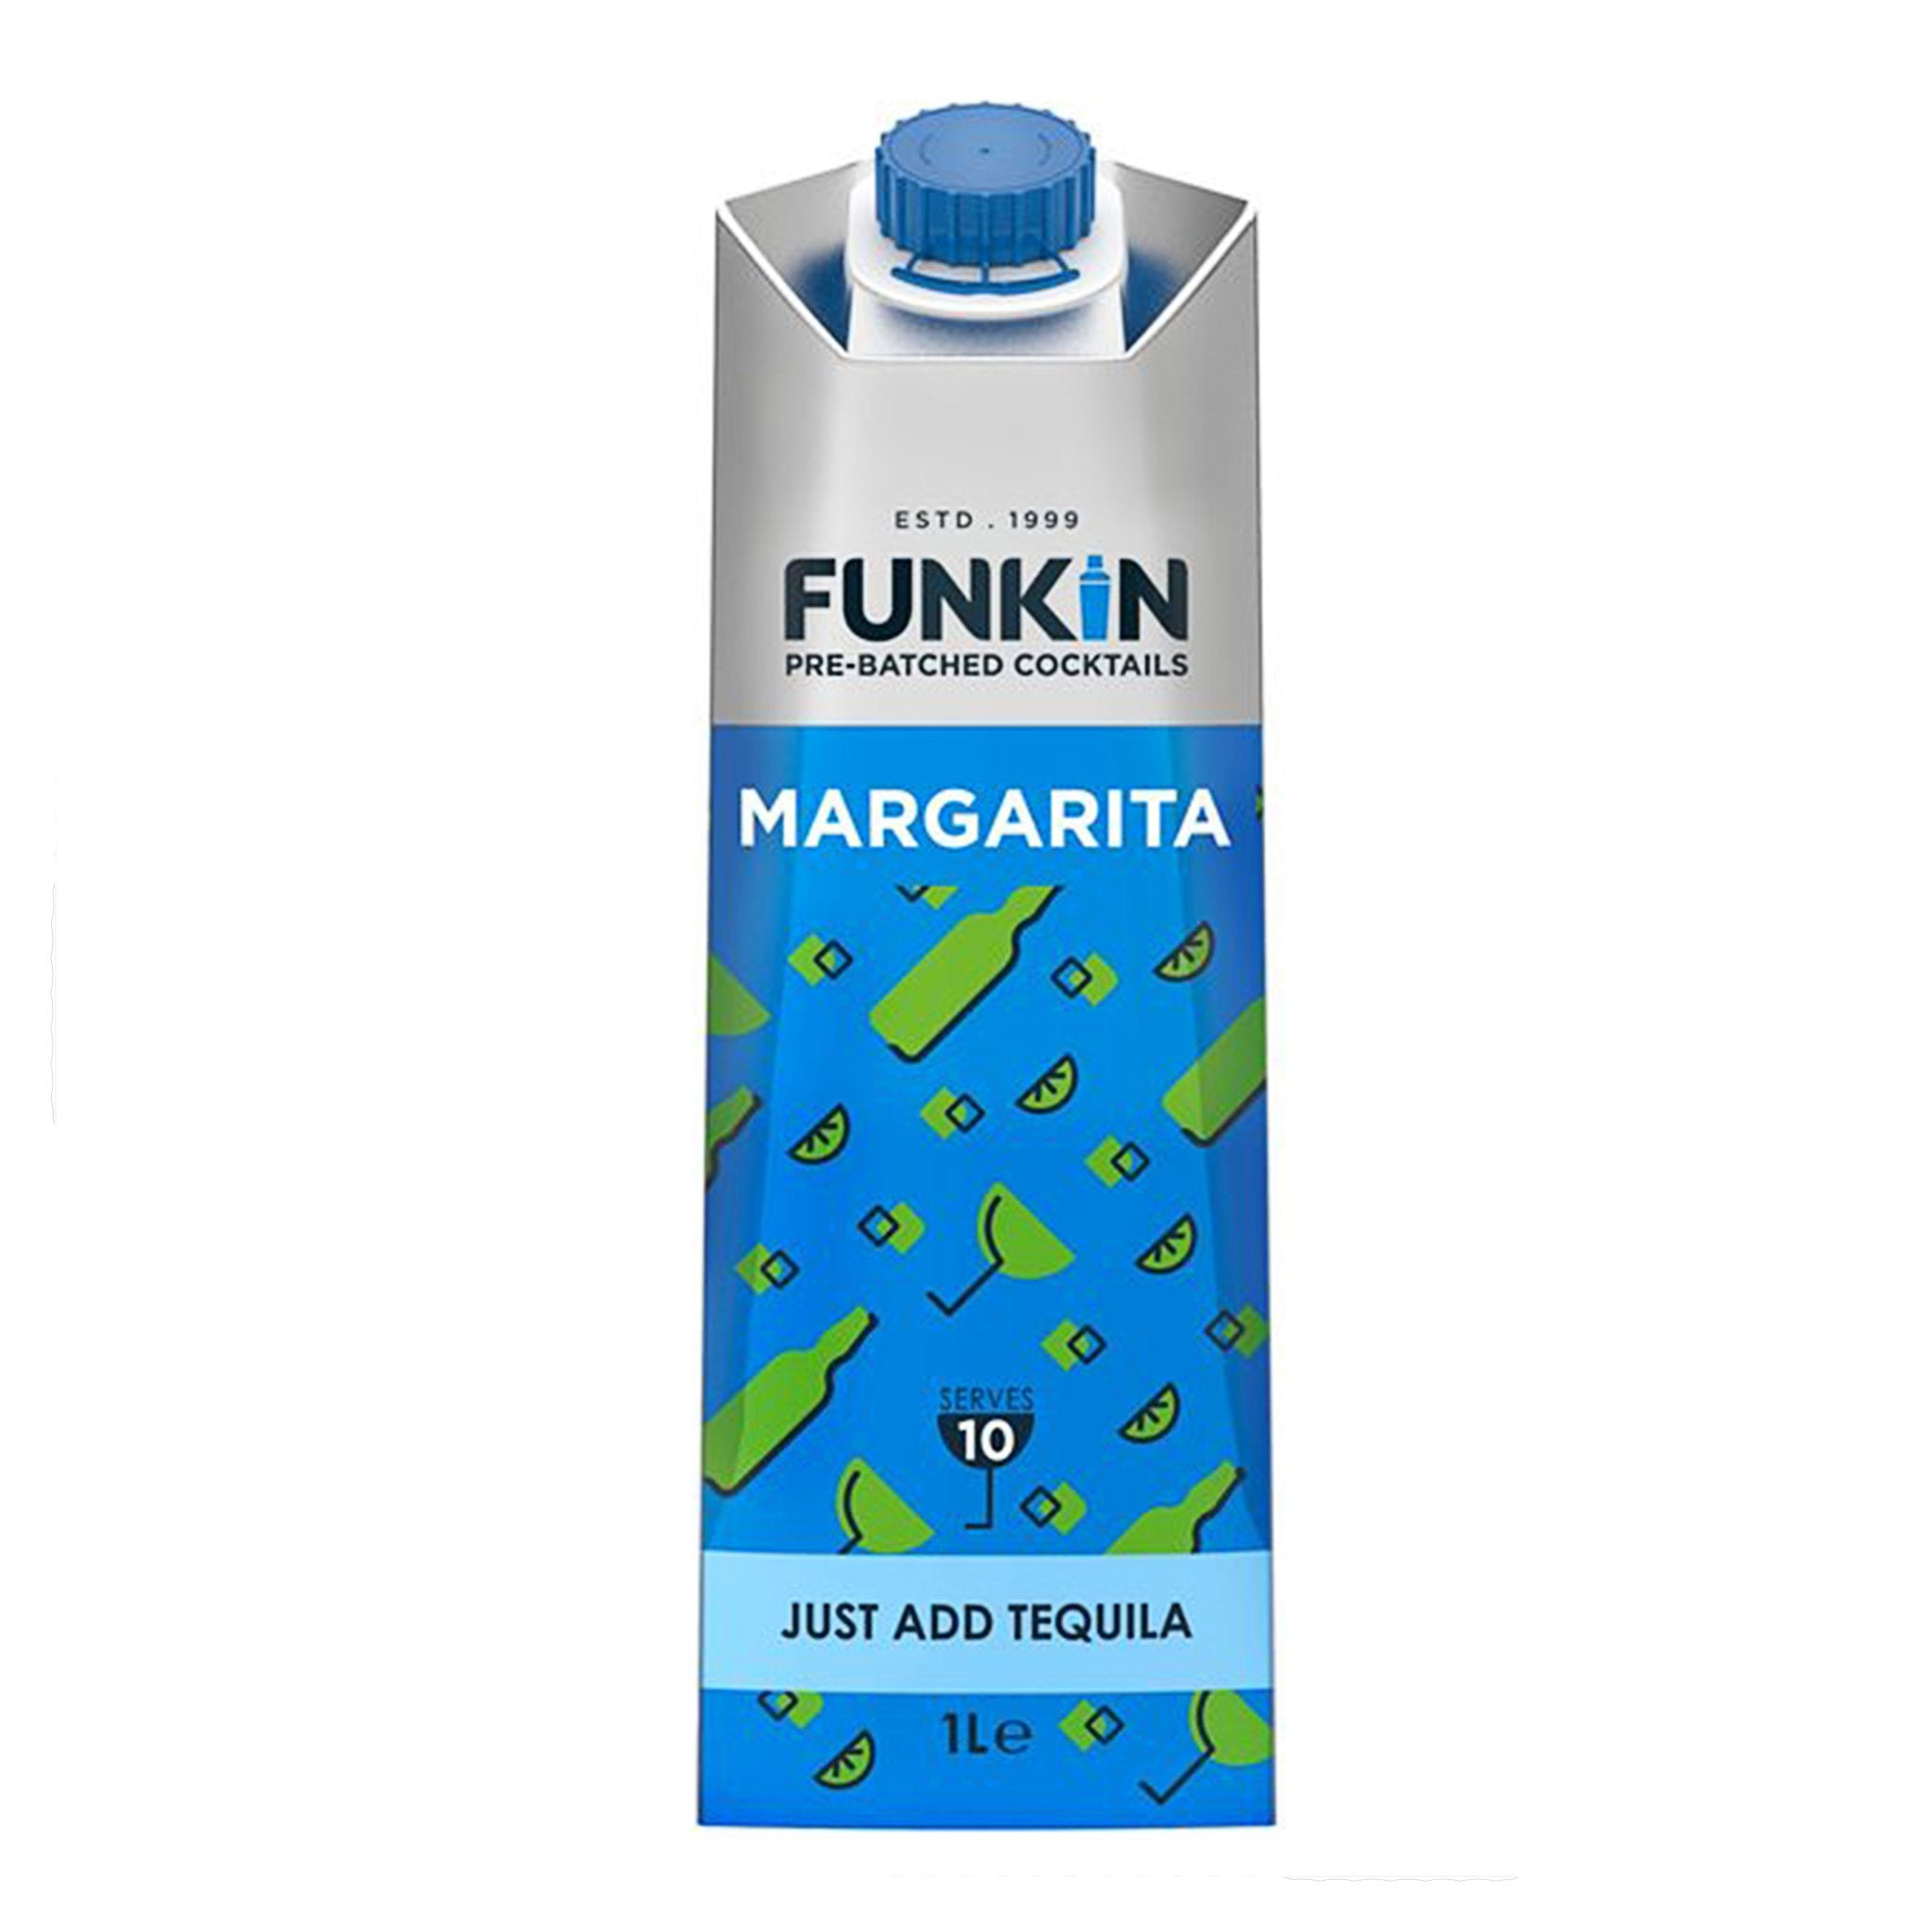 Funkin Margarita Pre-Batch Cocktails 1L, Cocktail Mixes by Drinks Shop